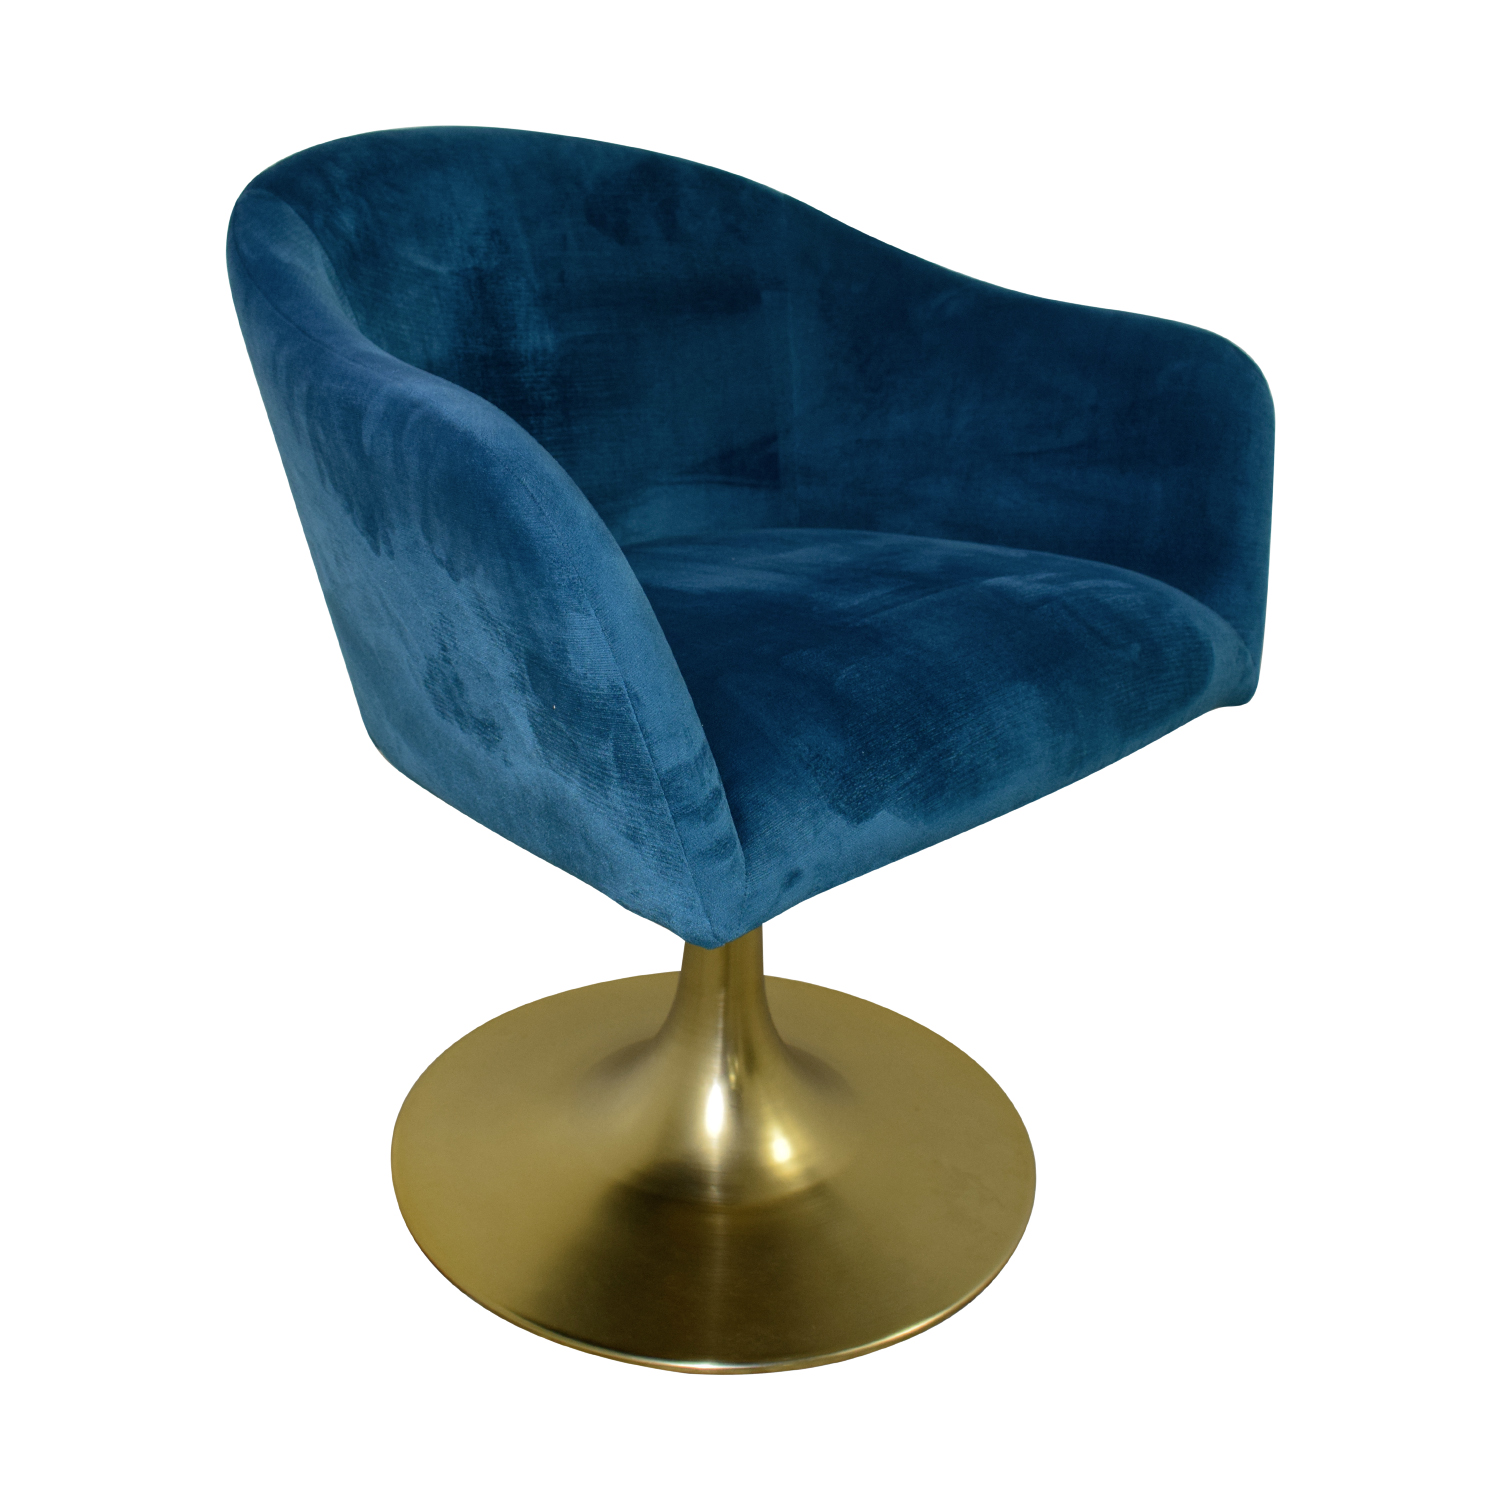 buy West Elm West Elm Bond Blue Velvet Swivel Chair online